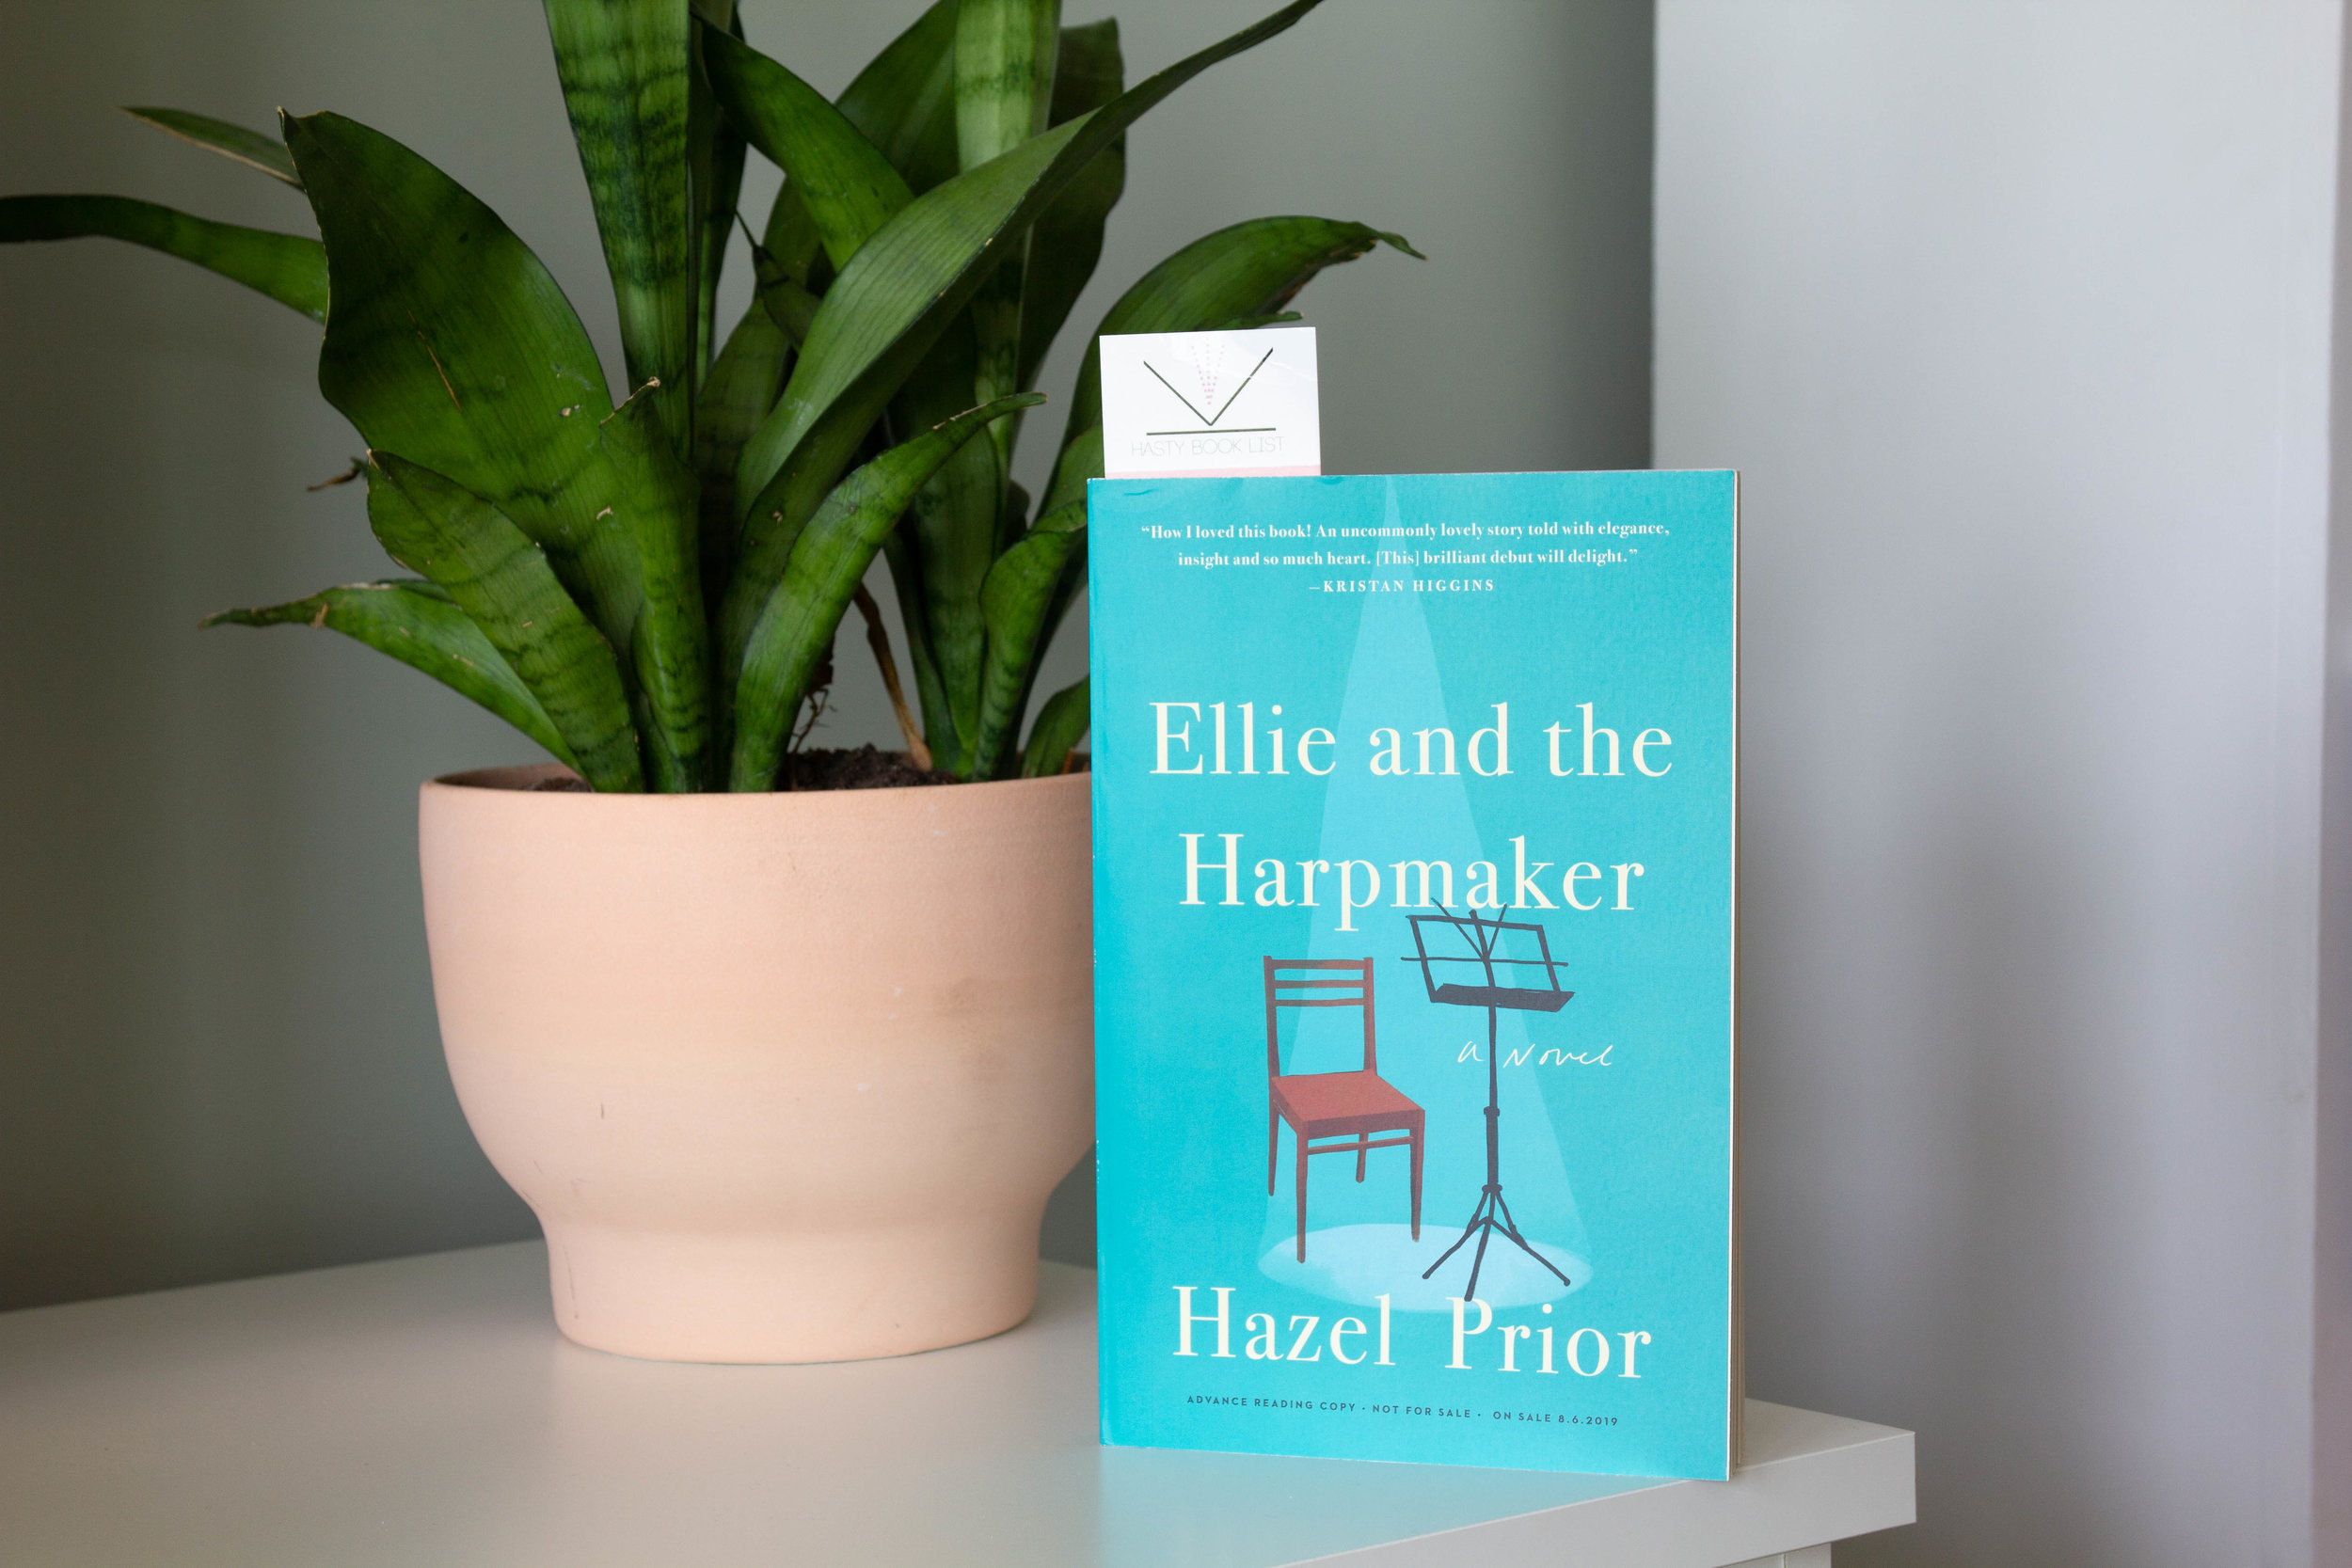 Book Feature - Ellie and the Harpmaker by Hazel Prior